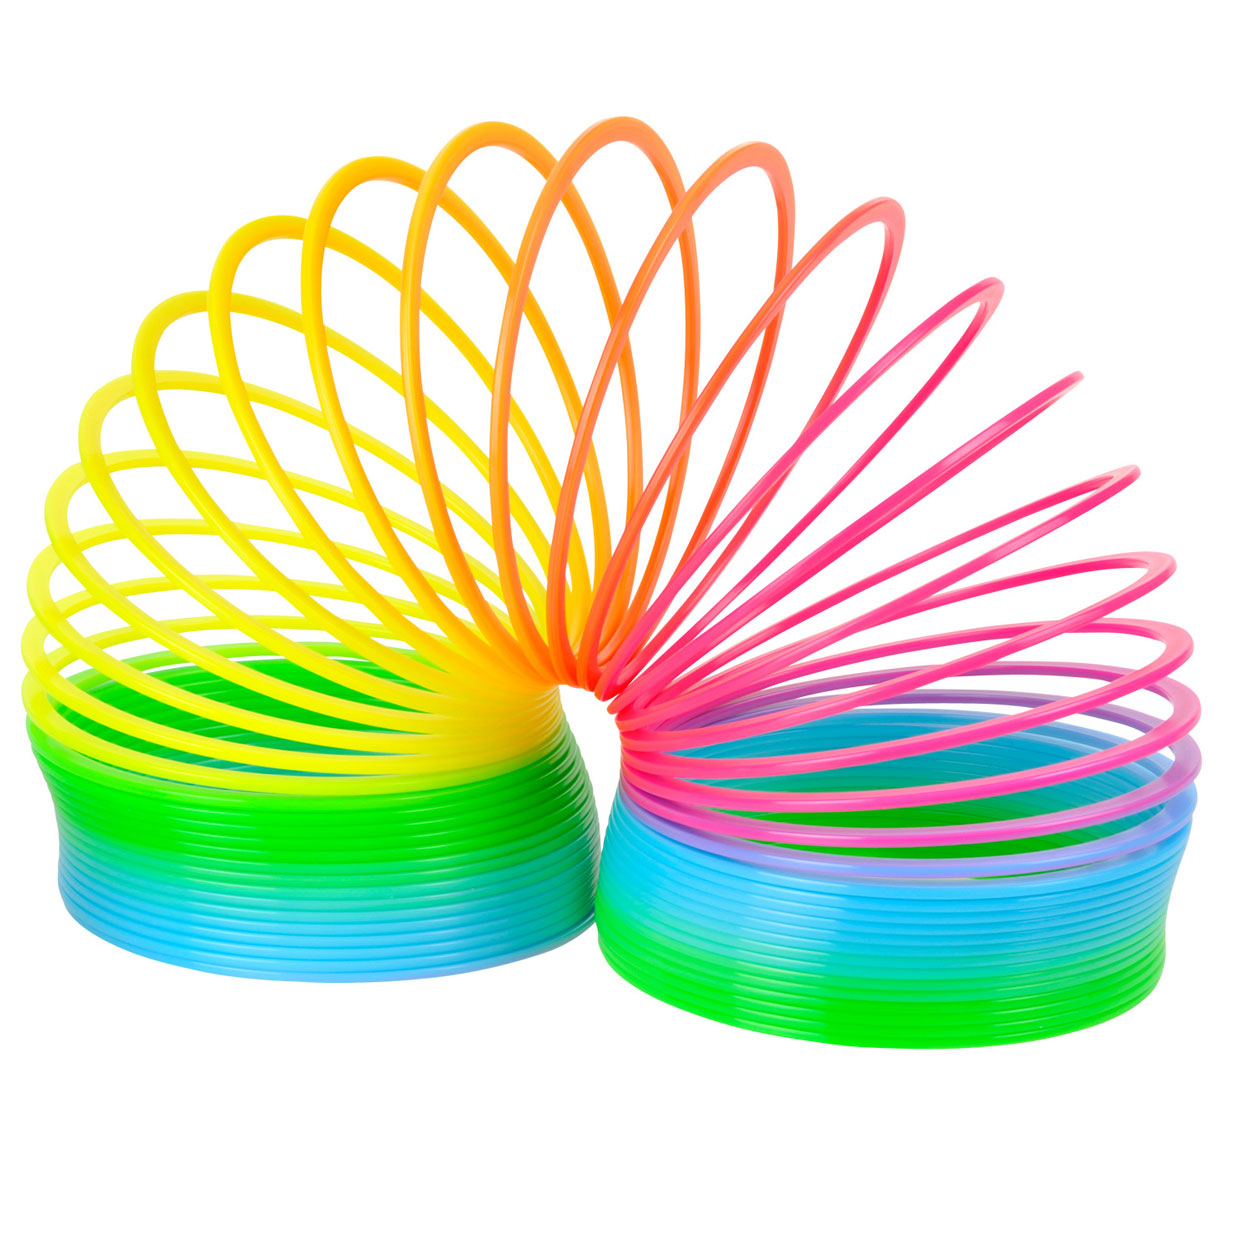 90s clipart spring toy, 90s spring toy Transparent FREE for.